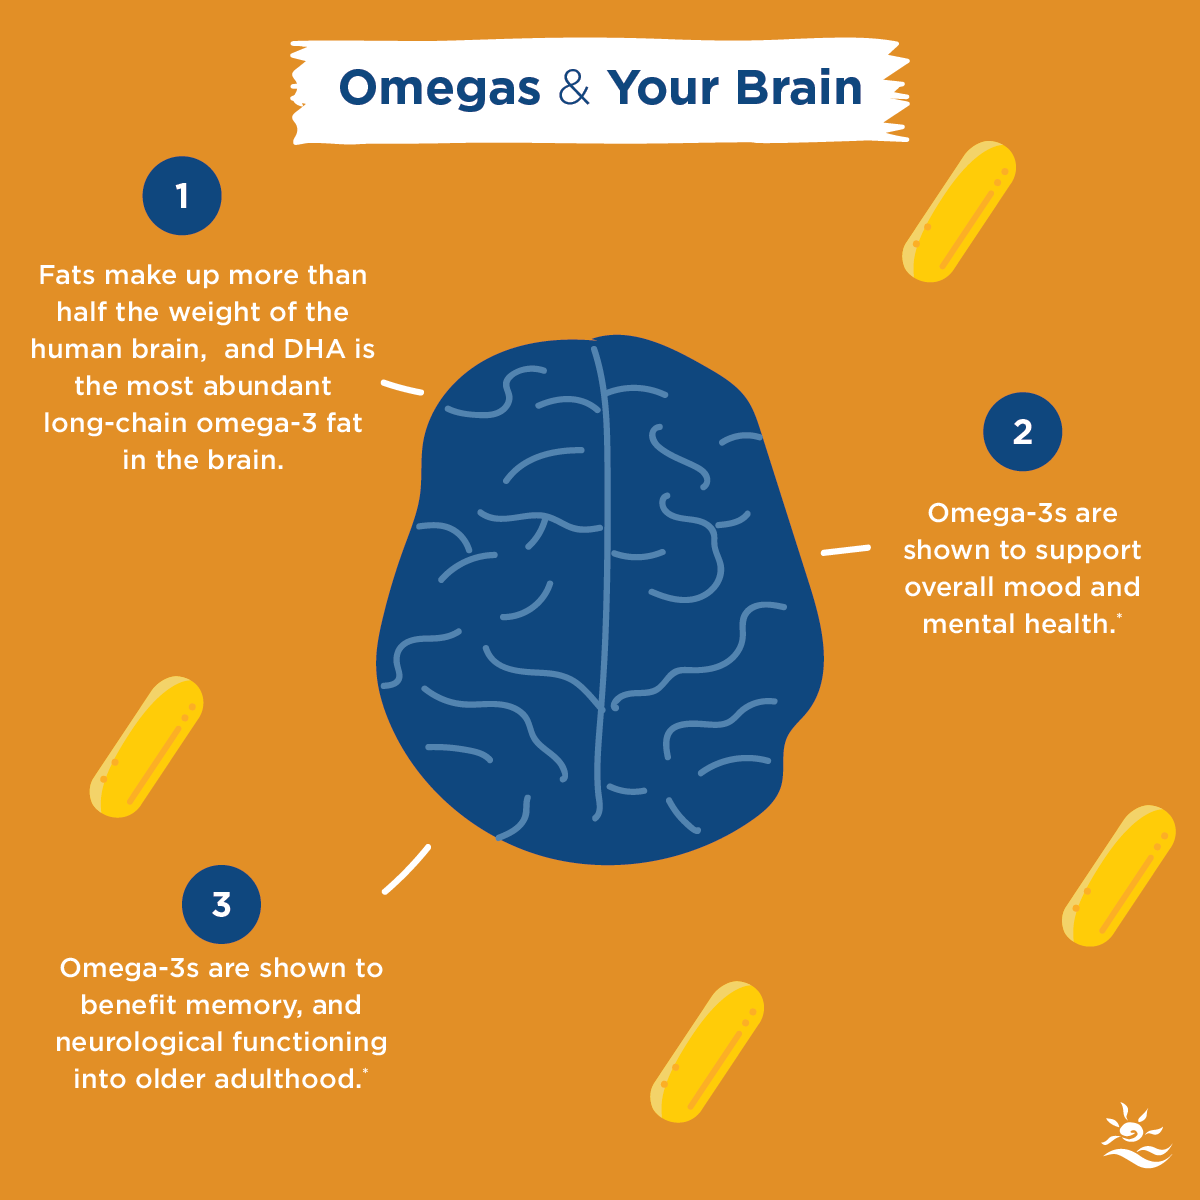 Omegas & your brain